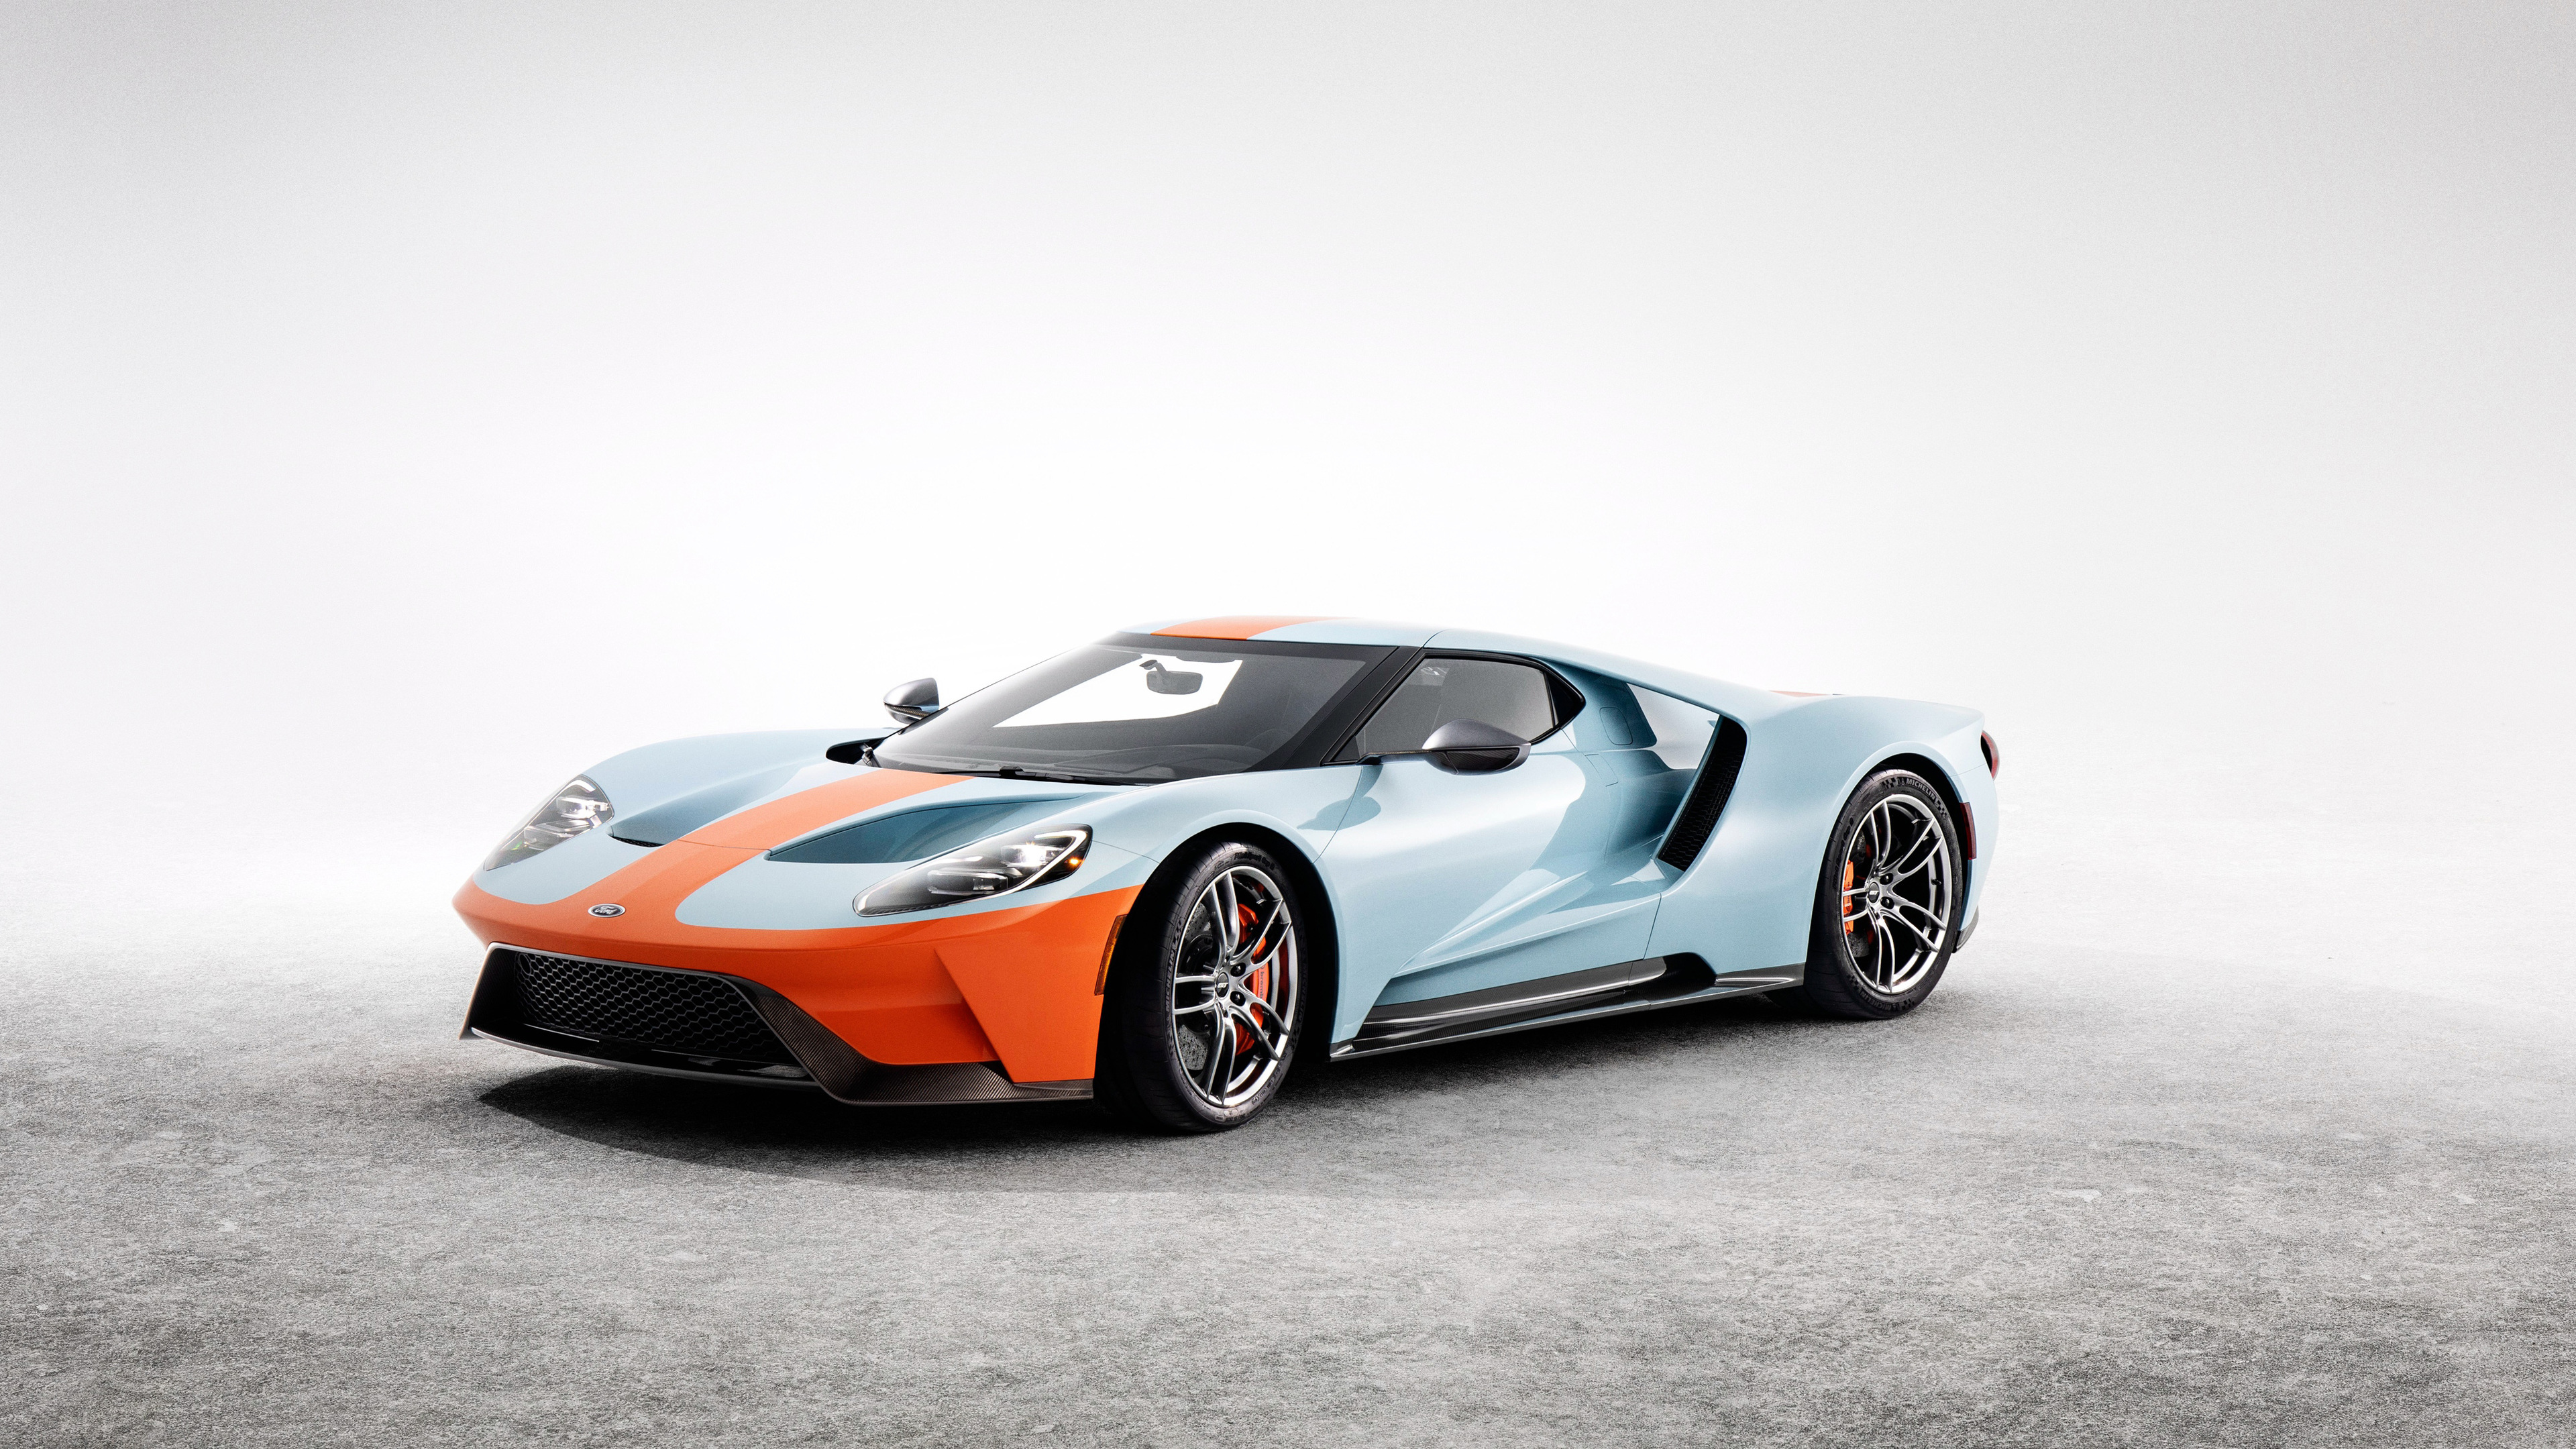 ford gt heritage edition 2018 4k 1539114231 - Ford GT Heritage Edition 2018 4K - hd-wallpapers, ford wallpapers, ford gt wallpapers, cars wallpapers, 4k-wallpapers